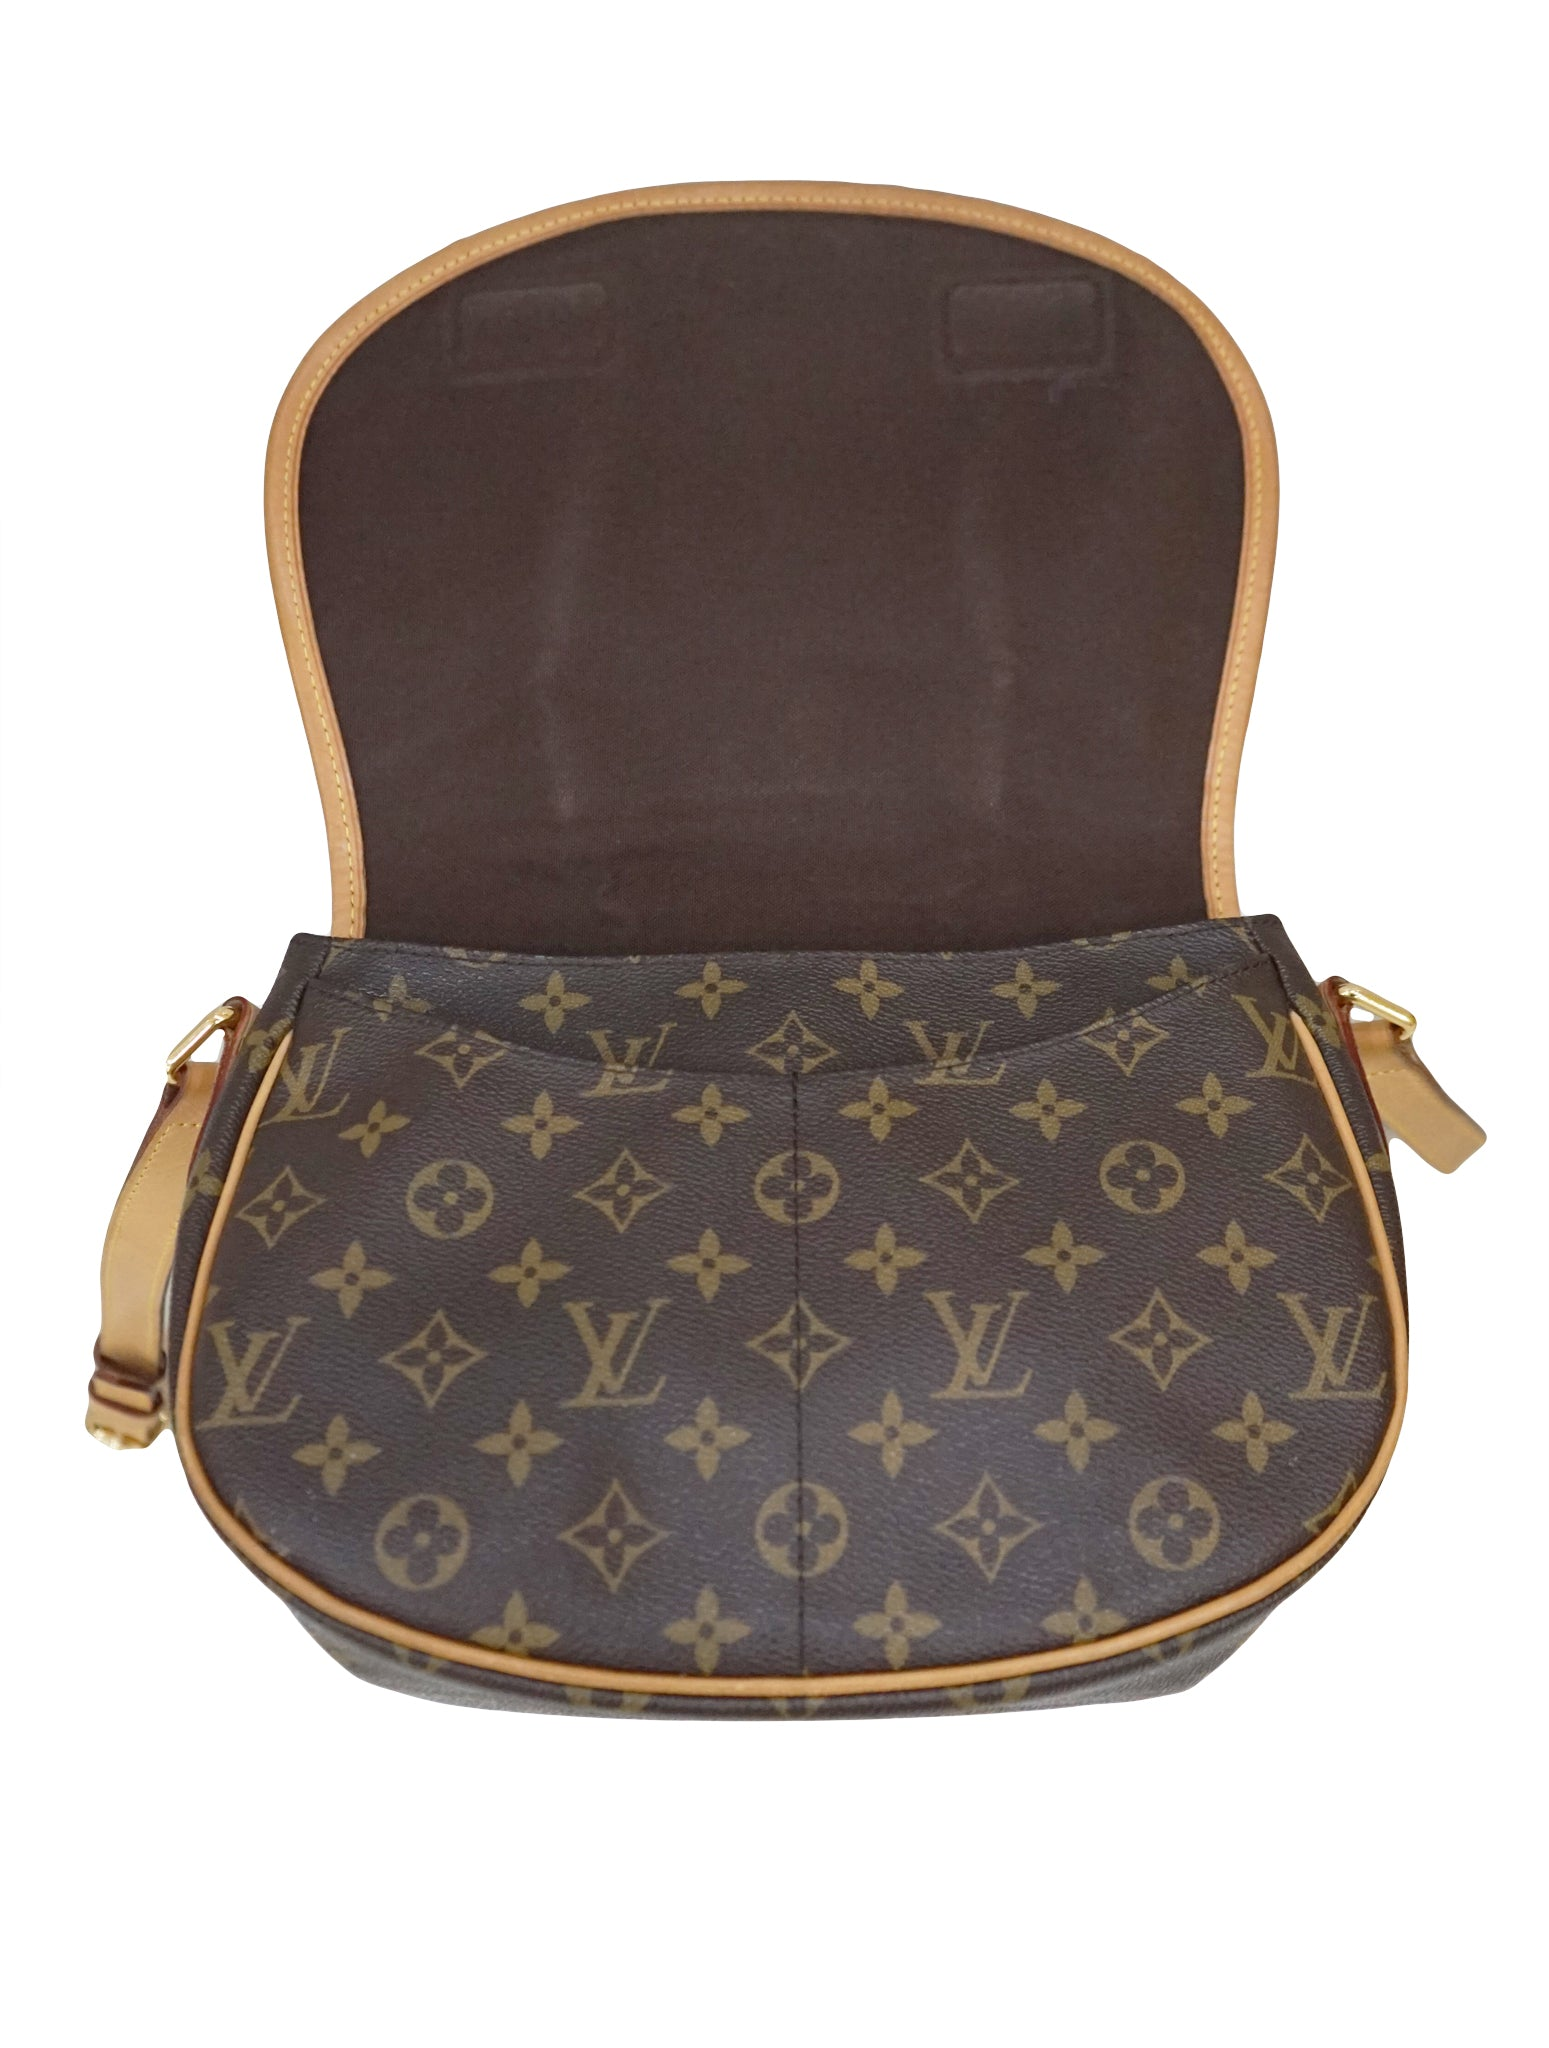 MONOGRAM CANVAS MENILMONTANT PM BAG